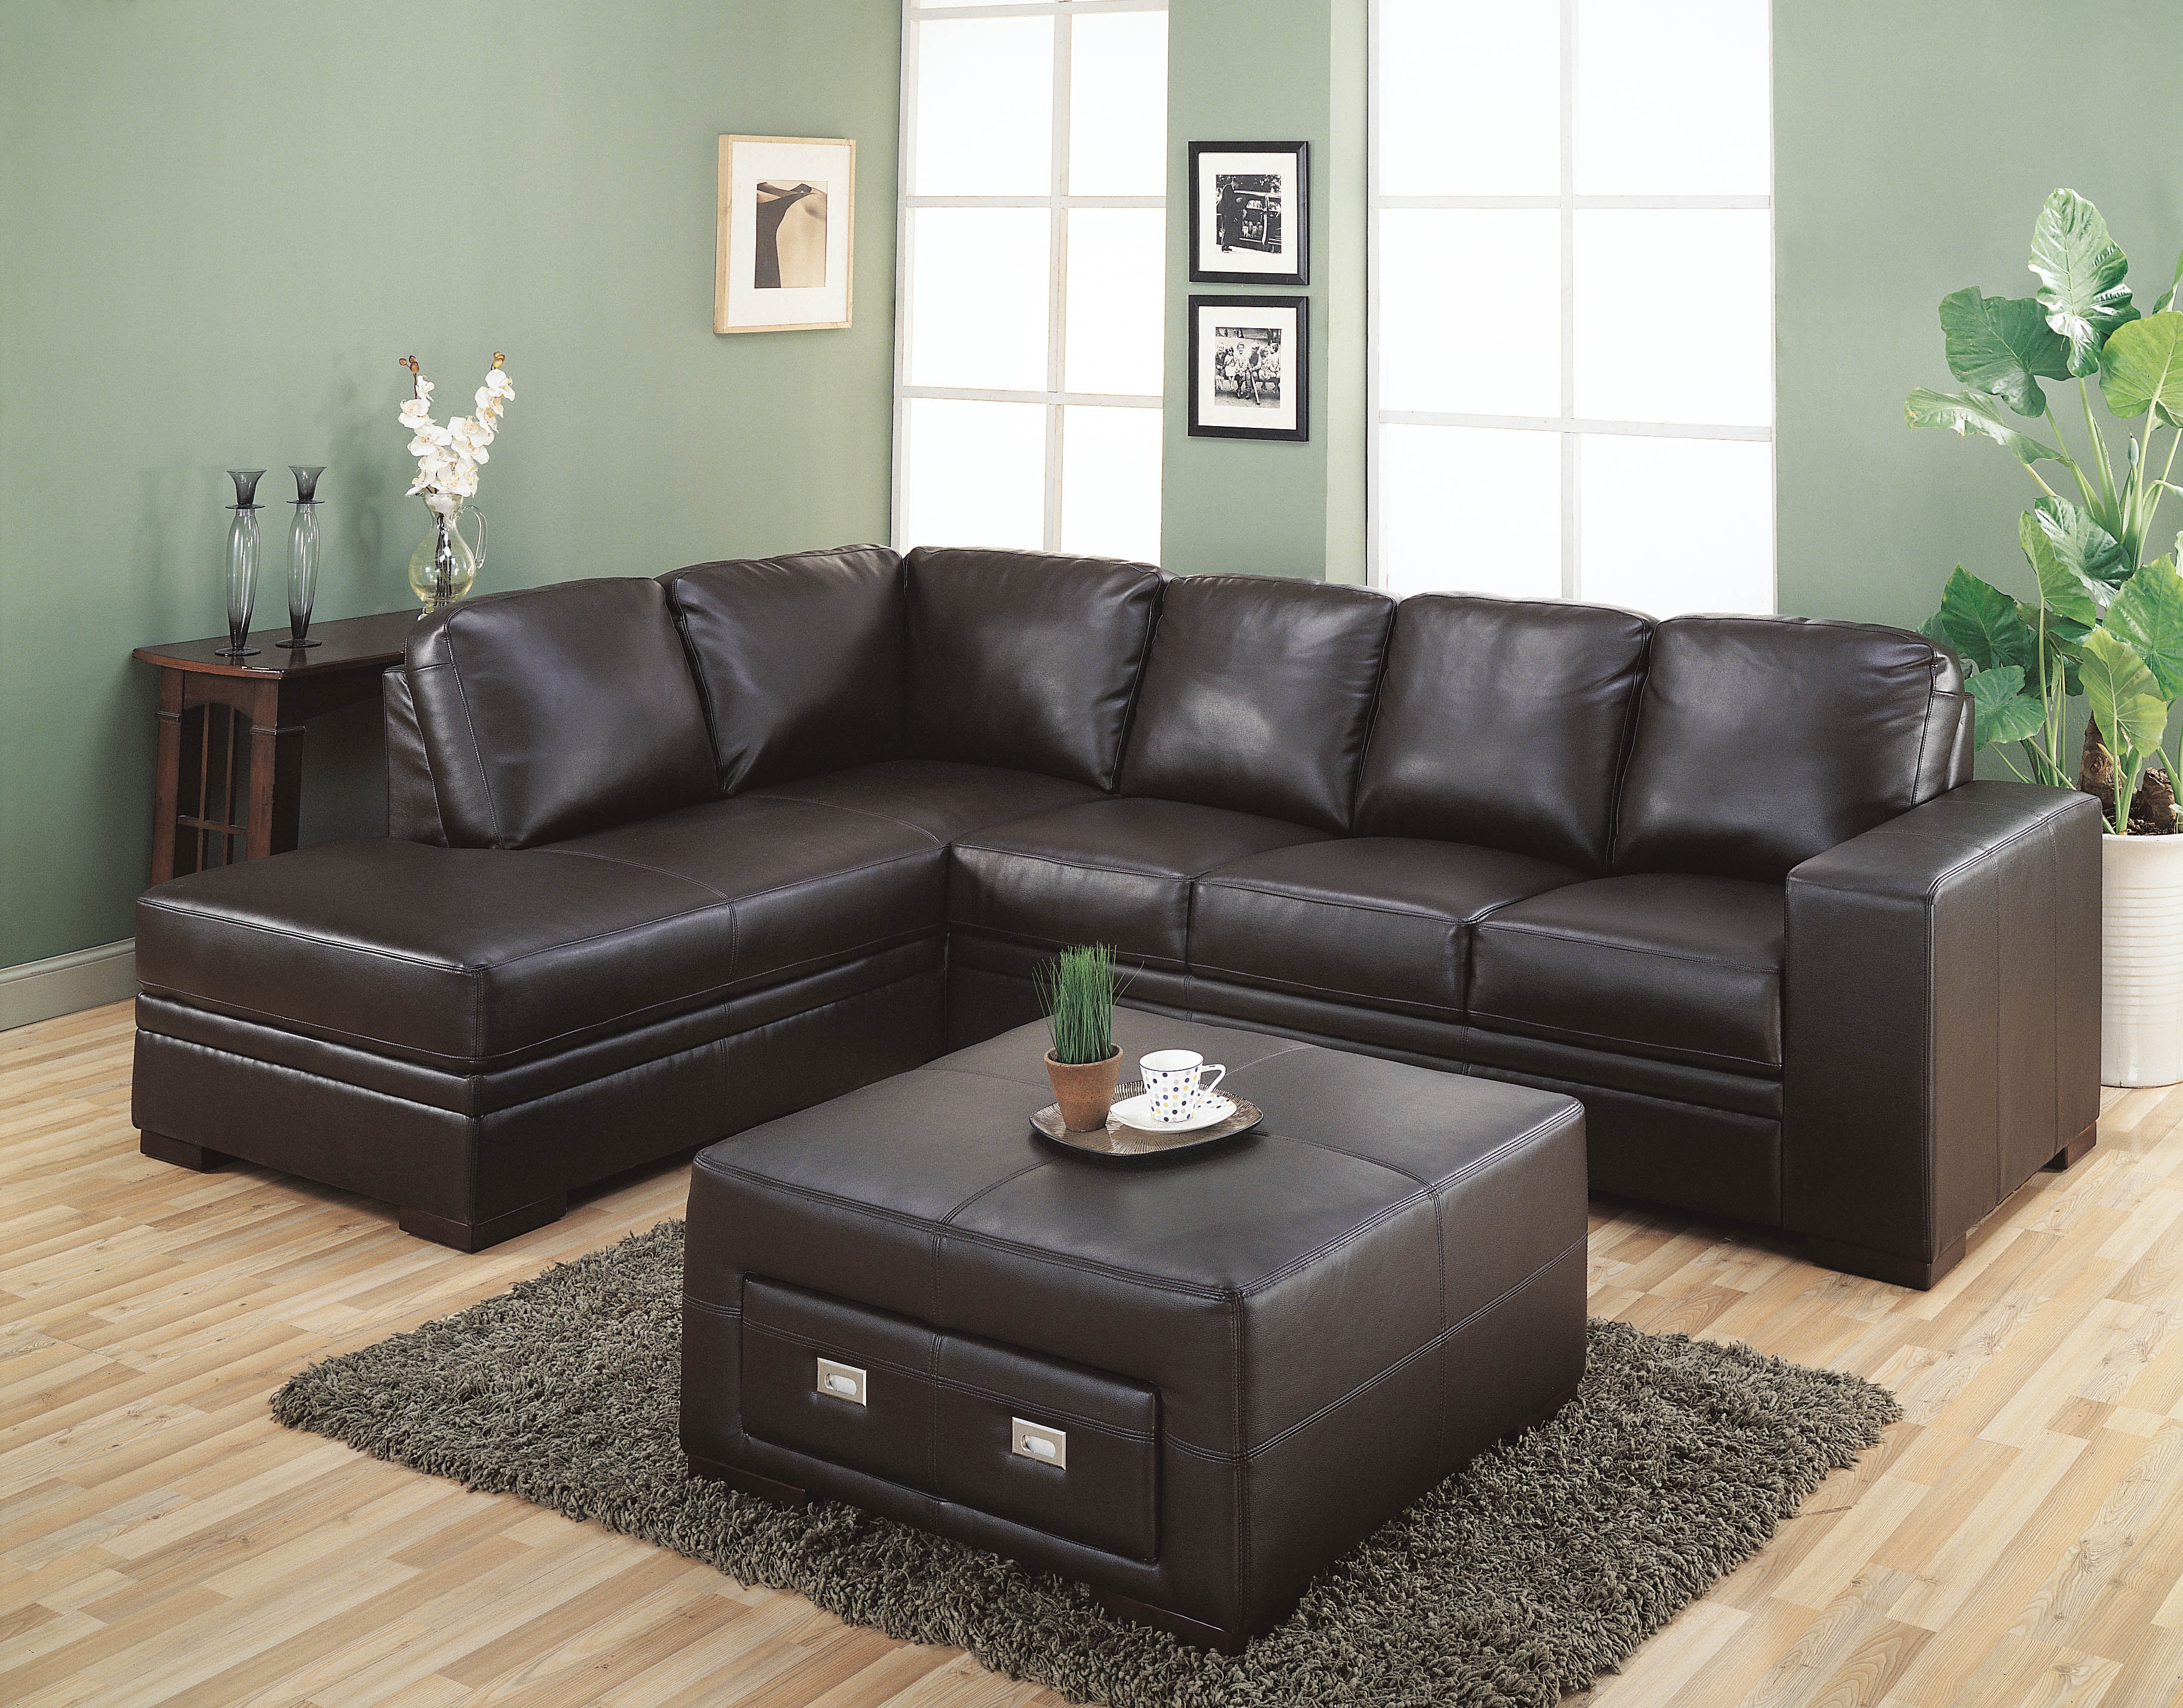 12 of Chocolate Brown Sectional Sofa